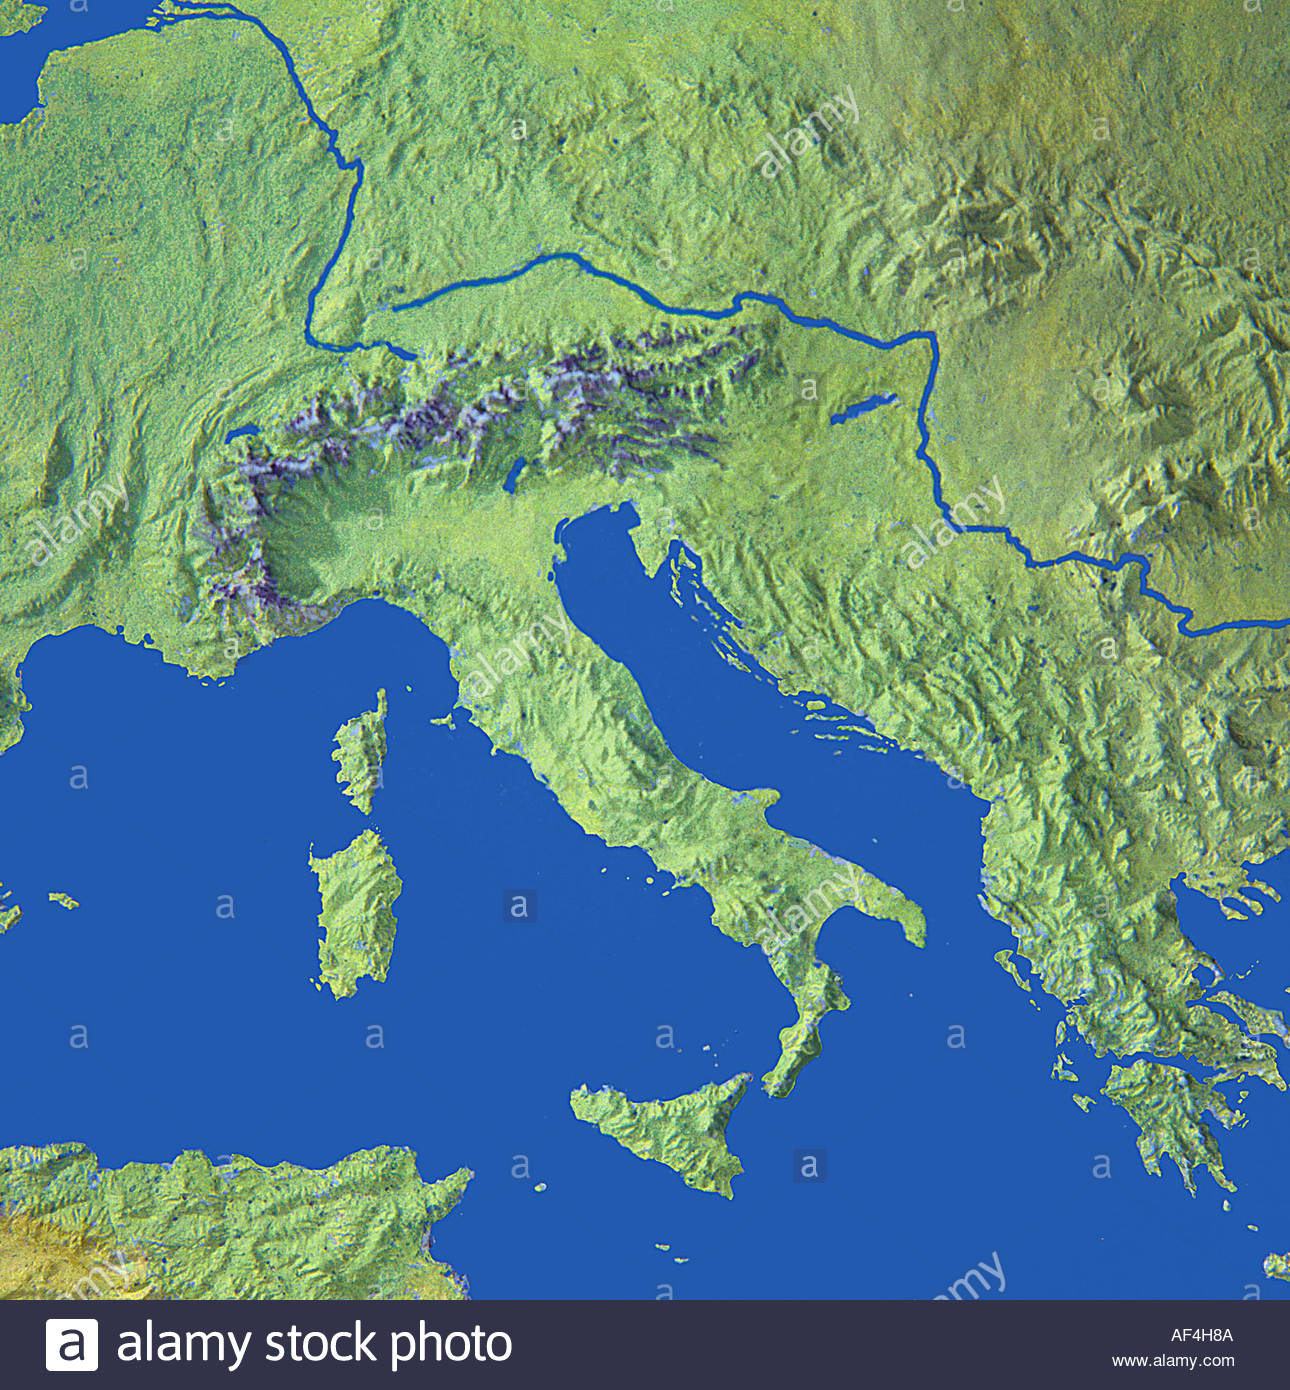 Map of Croatia   Croatia Wise in addition Italy Map Stock Photos   Italy Map Stock Images   Alamy besides Italy to Croatia Ferry Map  2018 additionally Beyond Italian Borders   Wines Of Croatia   Snia additionally Croatia Greece Map   GOOGLESAND likewise Italy to Croatia Highlights in Italy  Europe   G Adventures further Snav Ferries Italy Greece Italy  Italy Croatia Italy  Italy domestic in addition Dubrovnik to Rome   Intrepid Travel AU together with Big Italy Map   Physical map of Italy map  Italy Atlas likewise Croatia and Italy by Land and Sea   Peregrine Adventures ZA together with  also September 2017 ⇸ Journey through Central Europe   The Wanderlust additionally  additionally Tour the Adriatic Coast   Far Horizons as well Map Of And Spain France Italy Croatia – torchbearers info in addition Travelling from Ancona  Italy to Split  Croatia. on map of croatia and italy